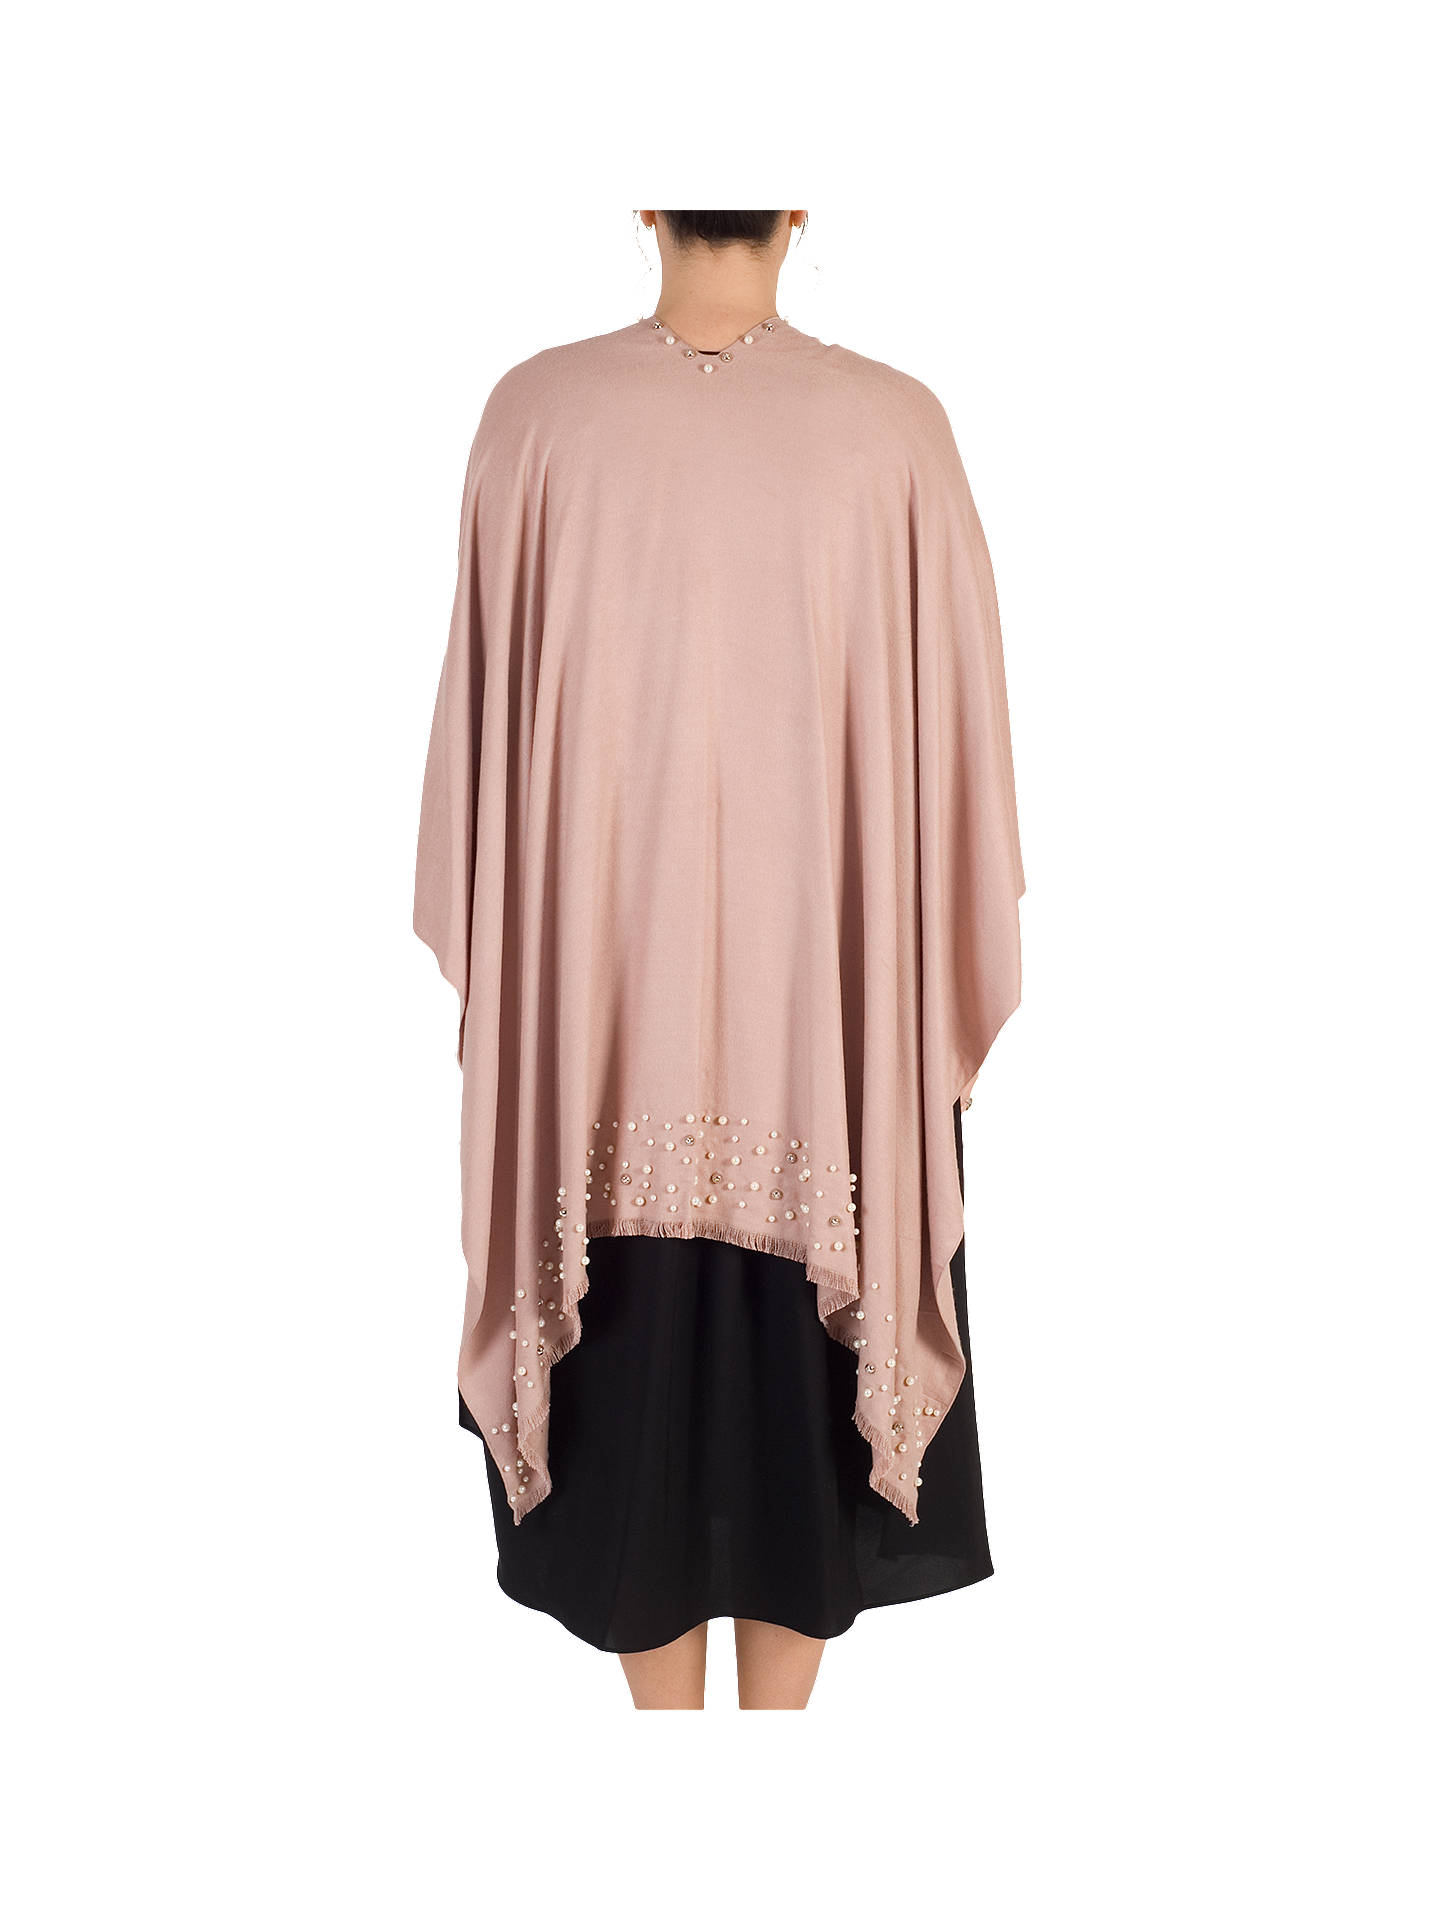 BuyChesca Pearl Beaded Poncho, Pink Online at johnlewis.com